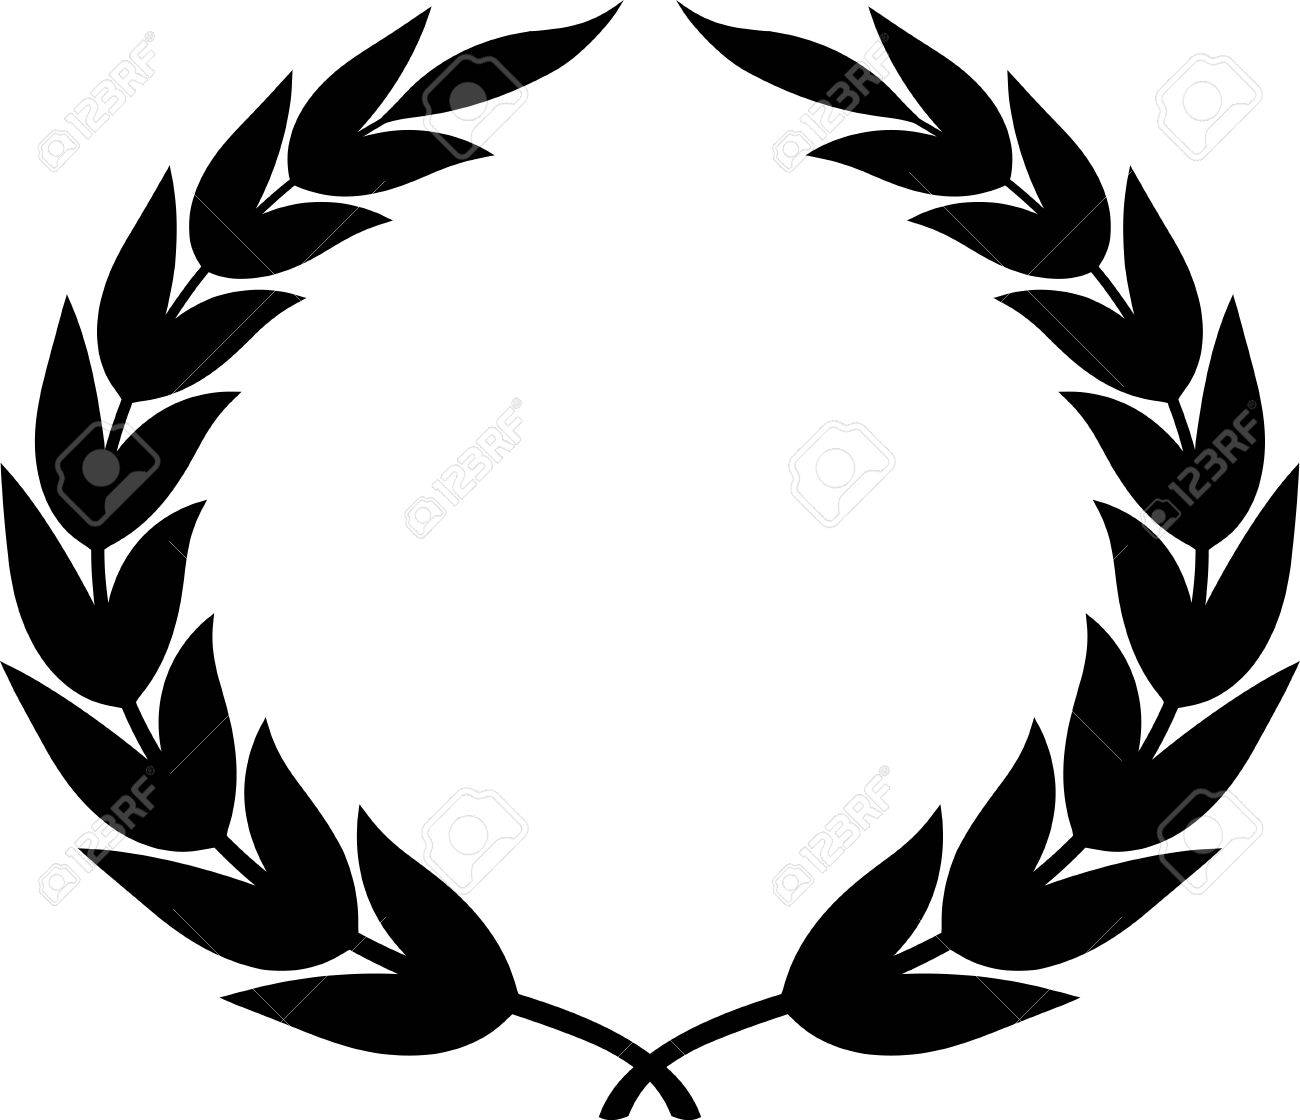 Laurel wreath clipart drawing isolated.